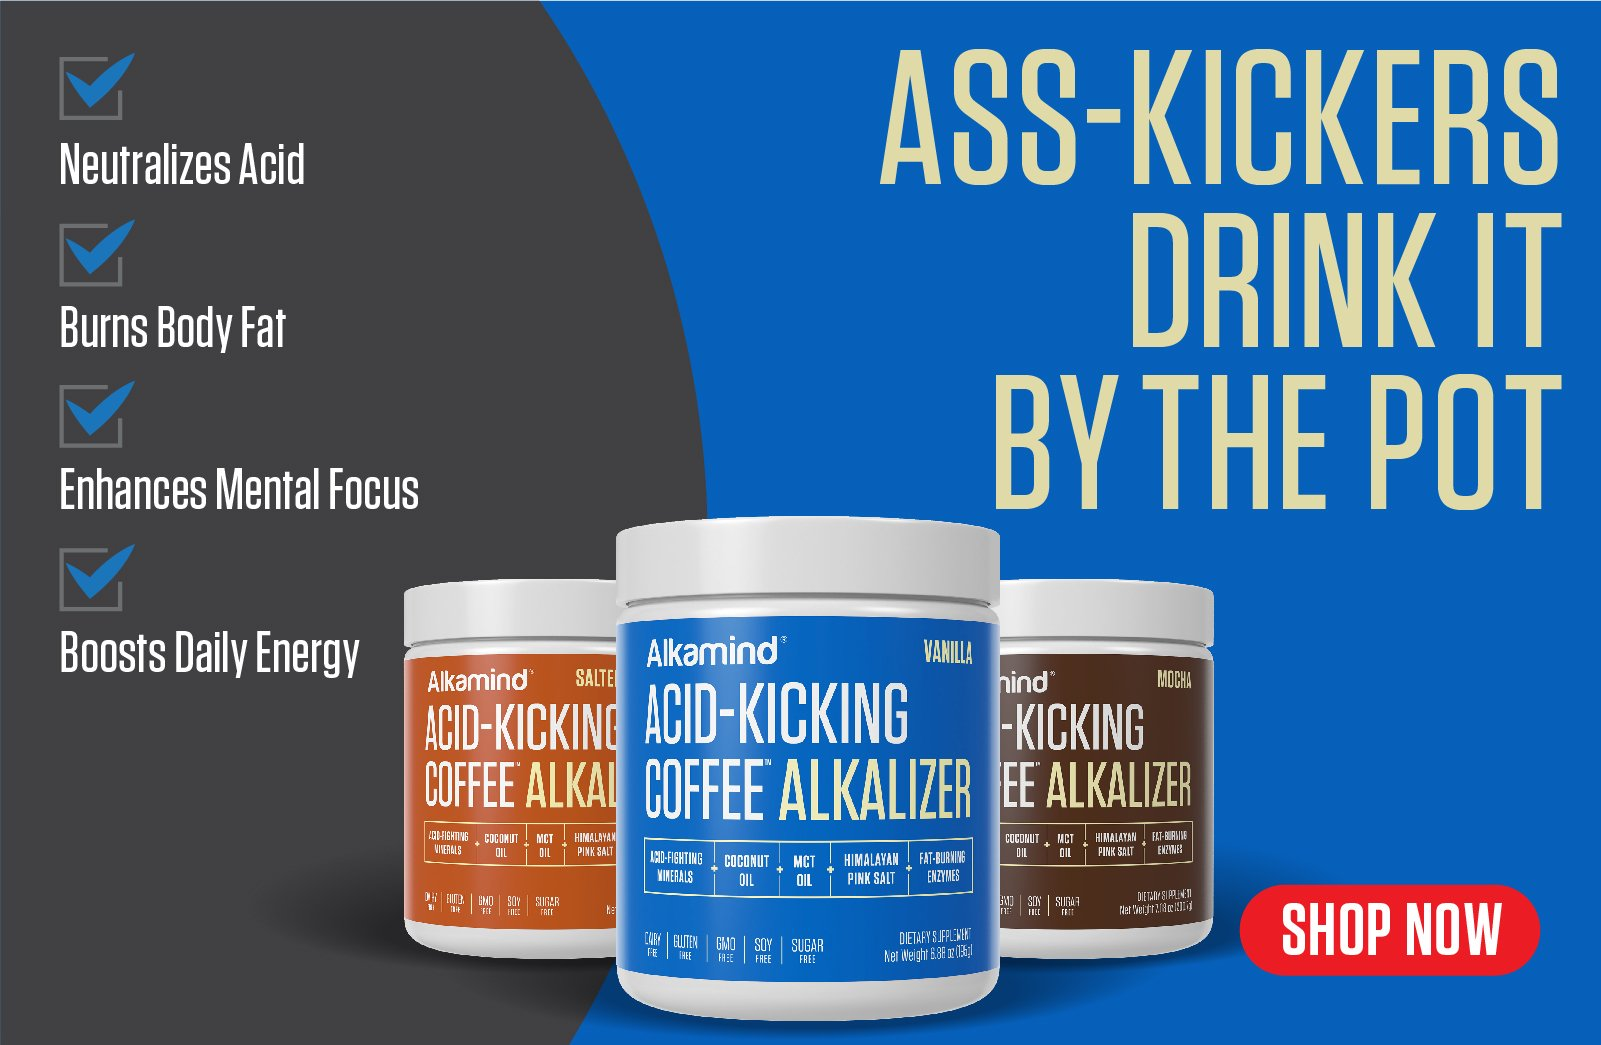 Ass-Kickers, drink it by the pot